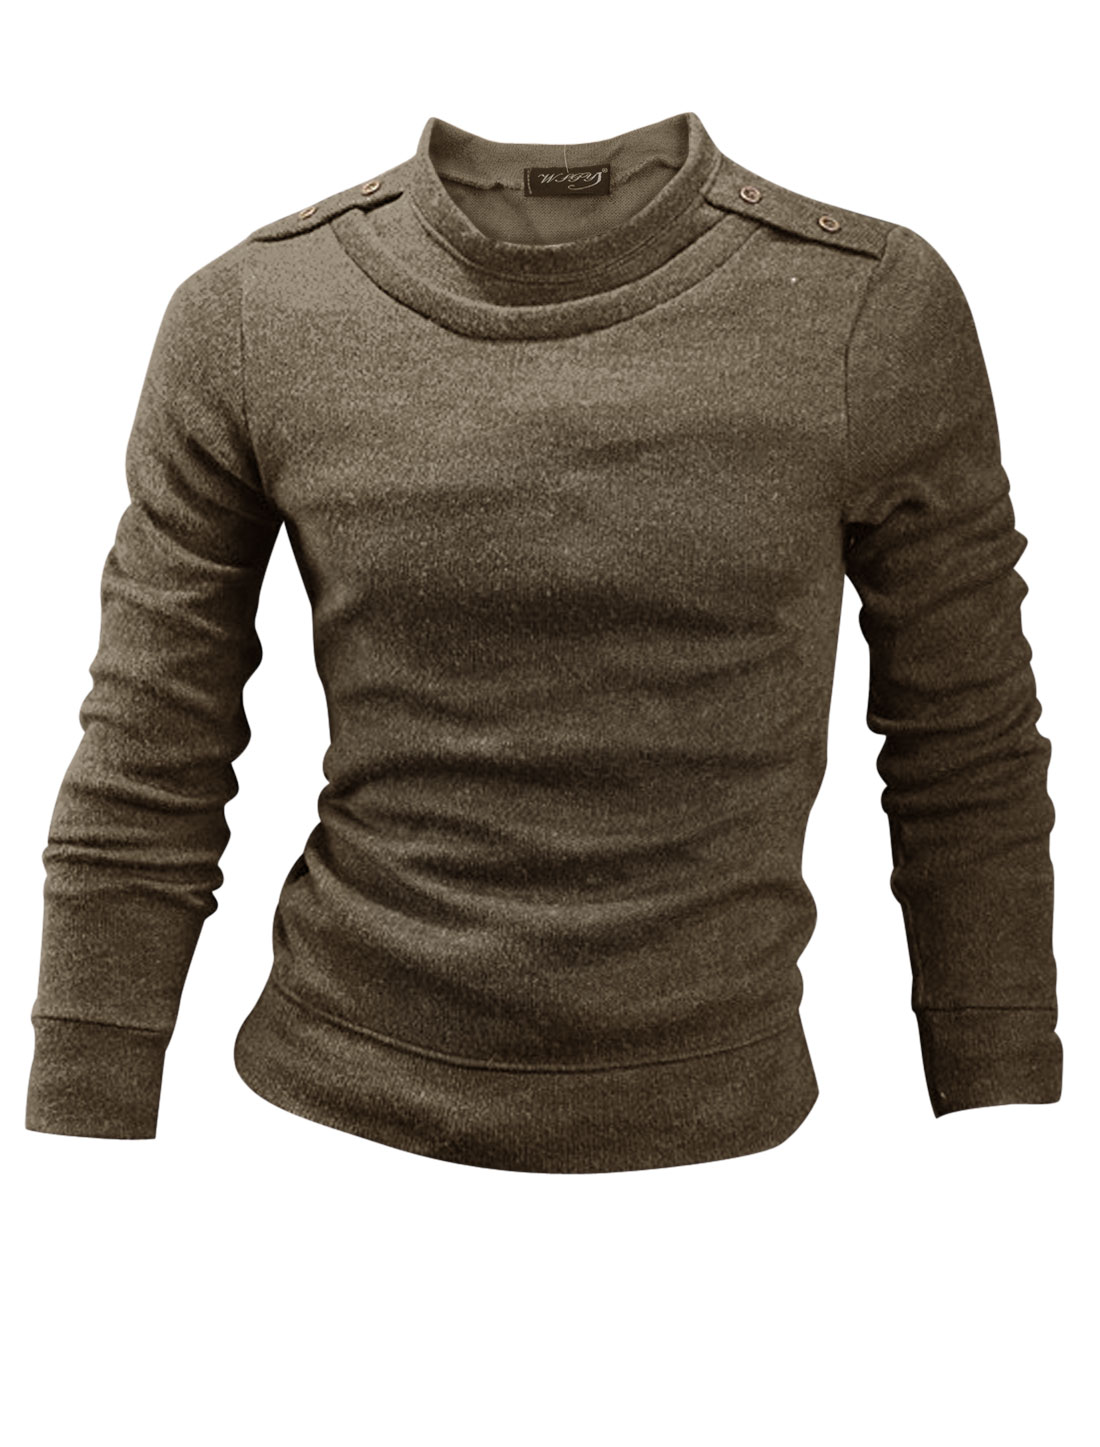 Men Round Neck Button Tab Shoulder Casual Knit Shirt Coffee M